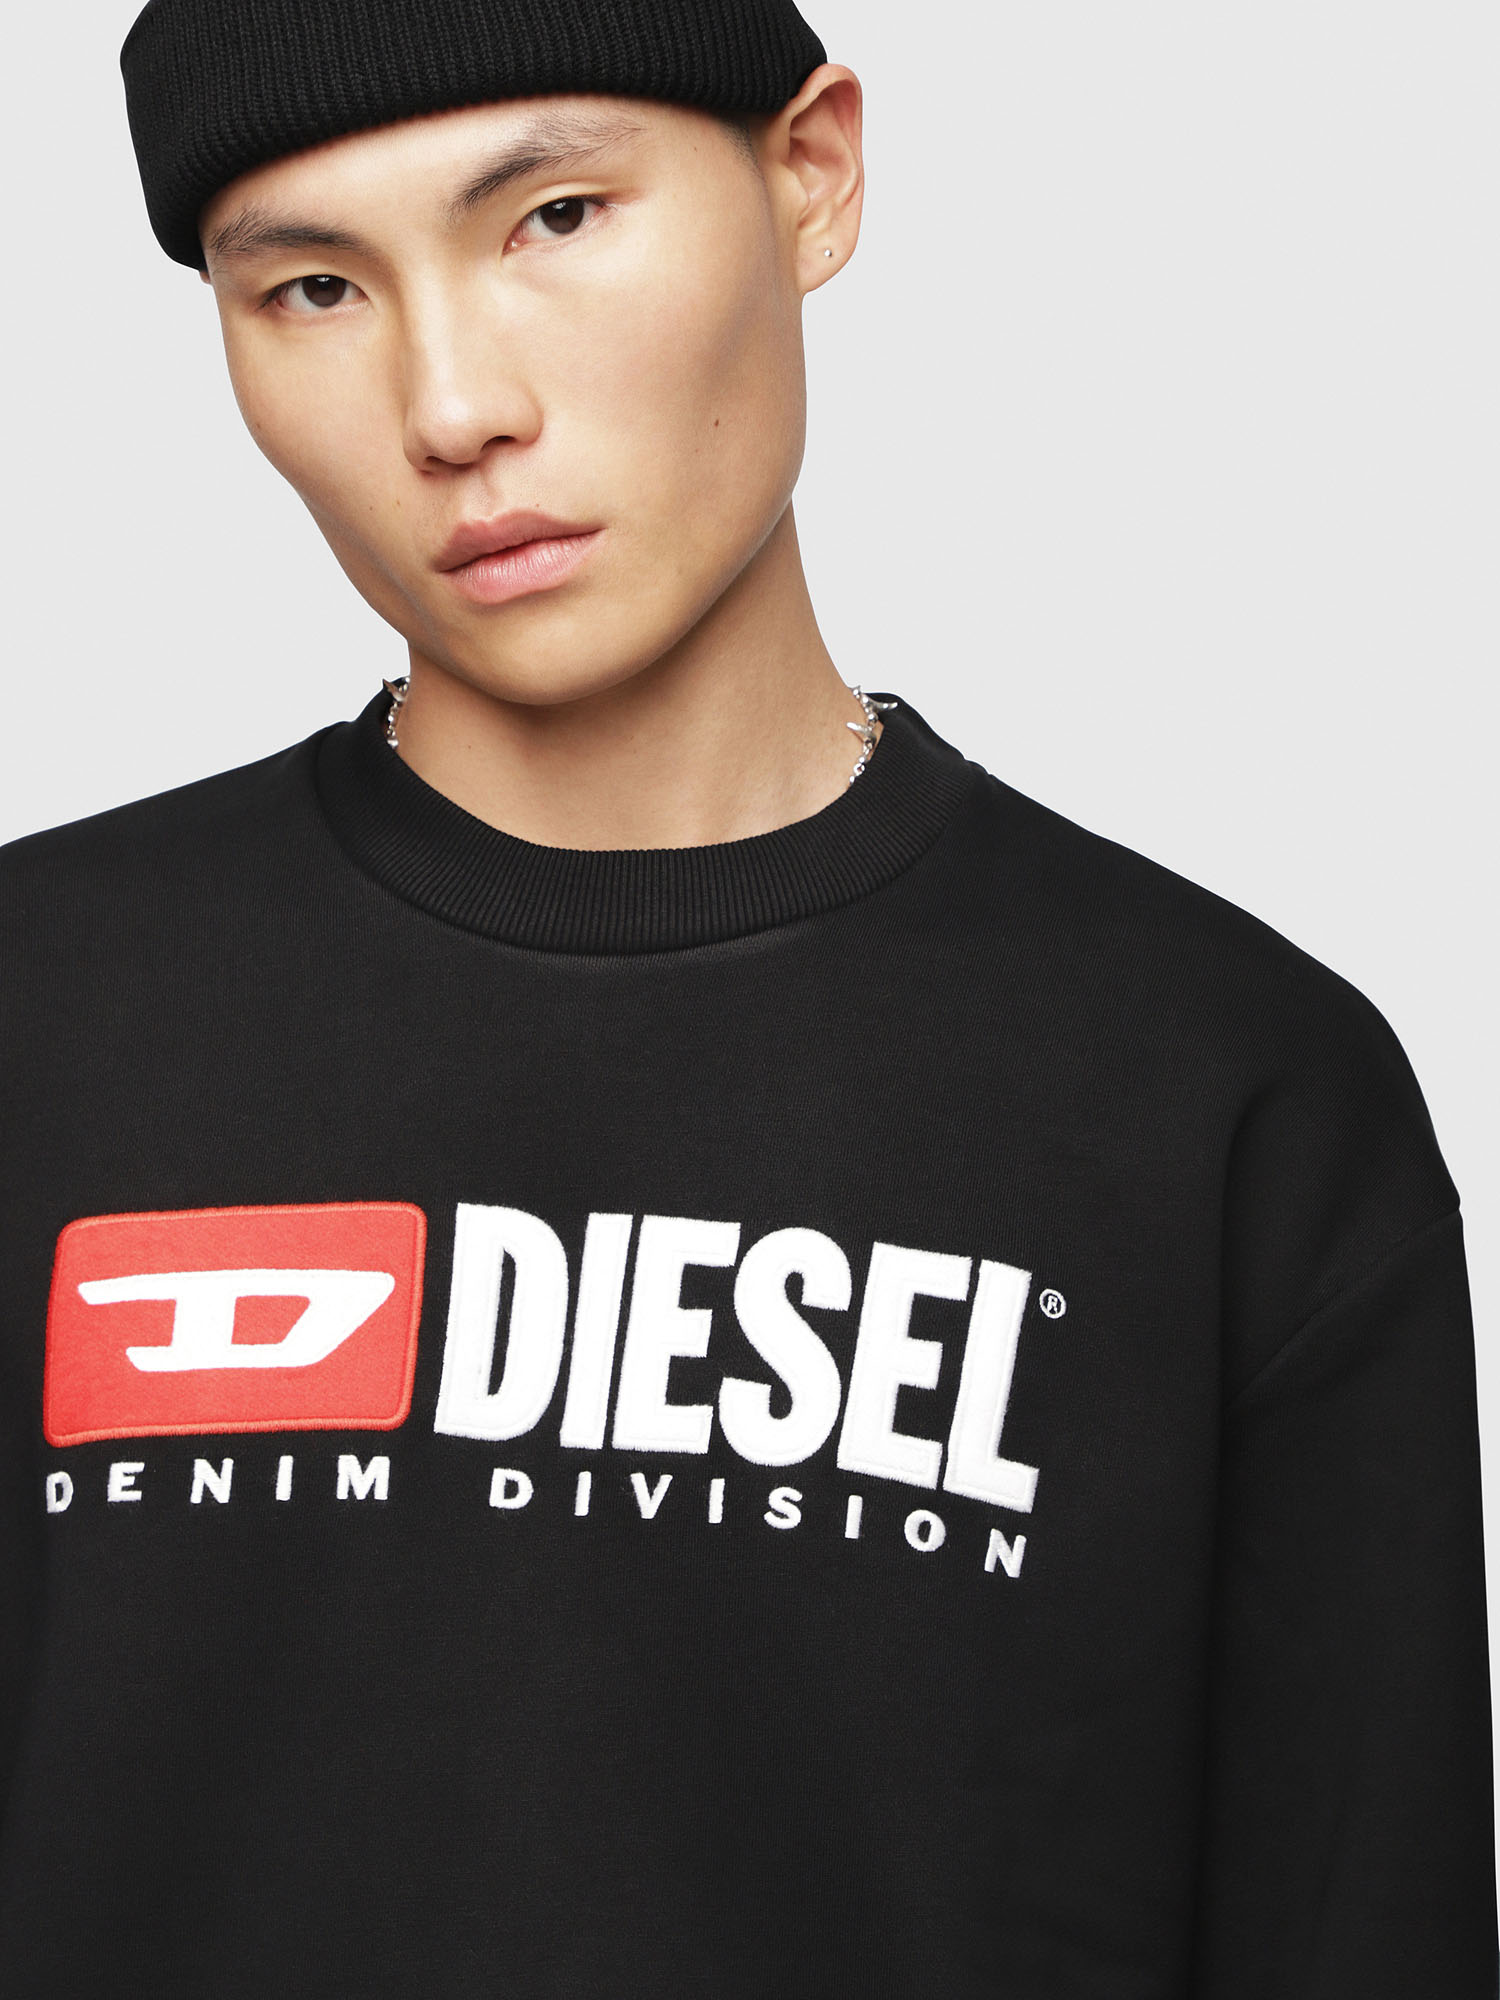 Diesel - S-CREW-DIVISION,  - Sweaters - Image 3